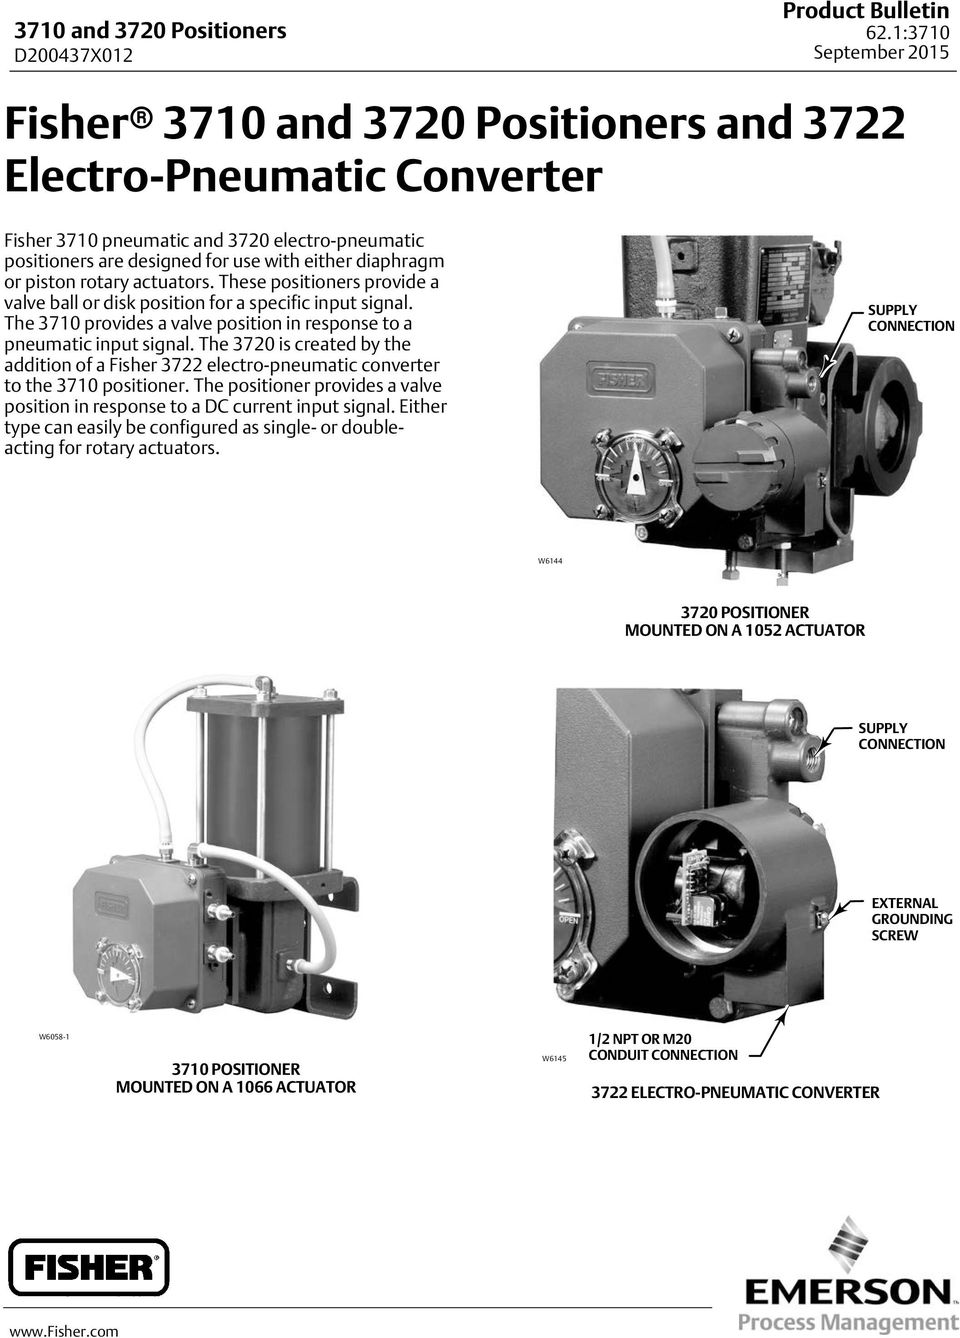 The 3710 provides a valve position in response to a pneumatic input signal. The 3720 is created by the addition of a Fisher 3722 electro-pneumatic converter to the 3710 positioner.